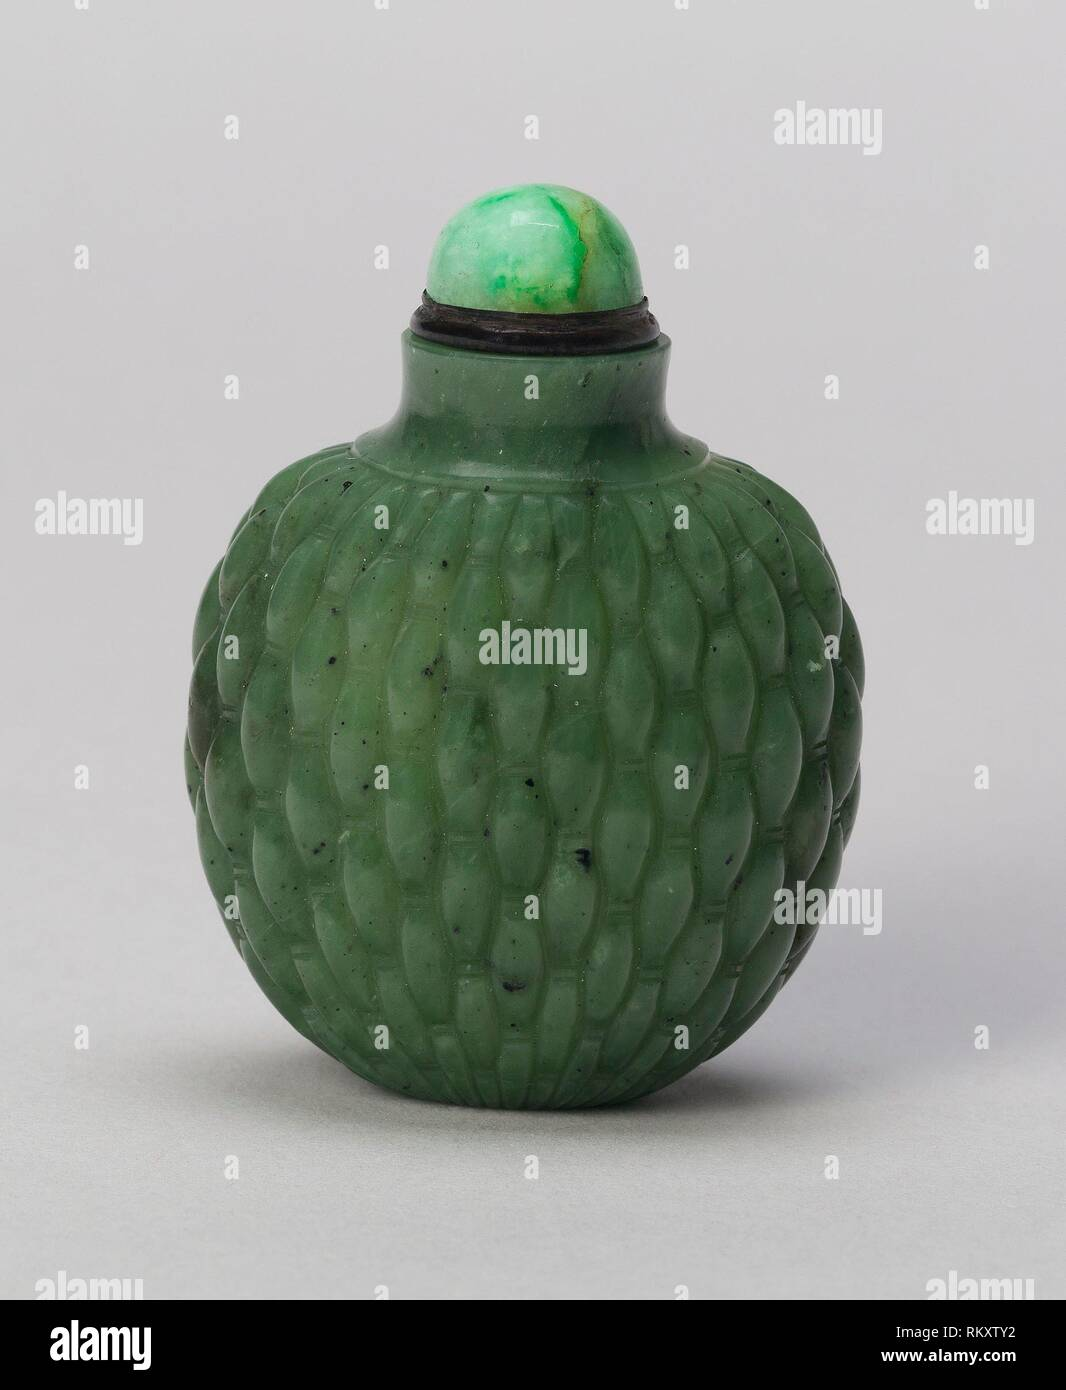 Spade-Shaped Snuff Bottle with Basketweave Patterns - Qing dynasty (1644-1911), 1770-1850 - China - Origin: China, Date: 1770-1850, Medium: Spinach Stock Photo